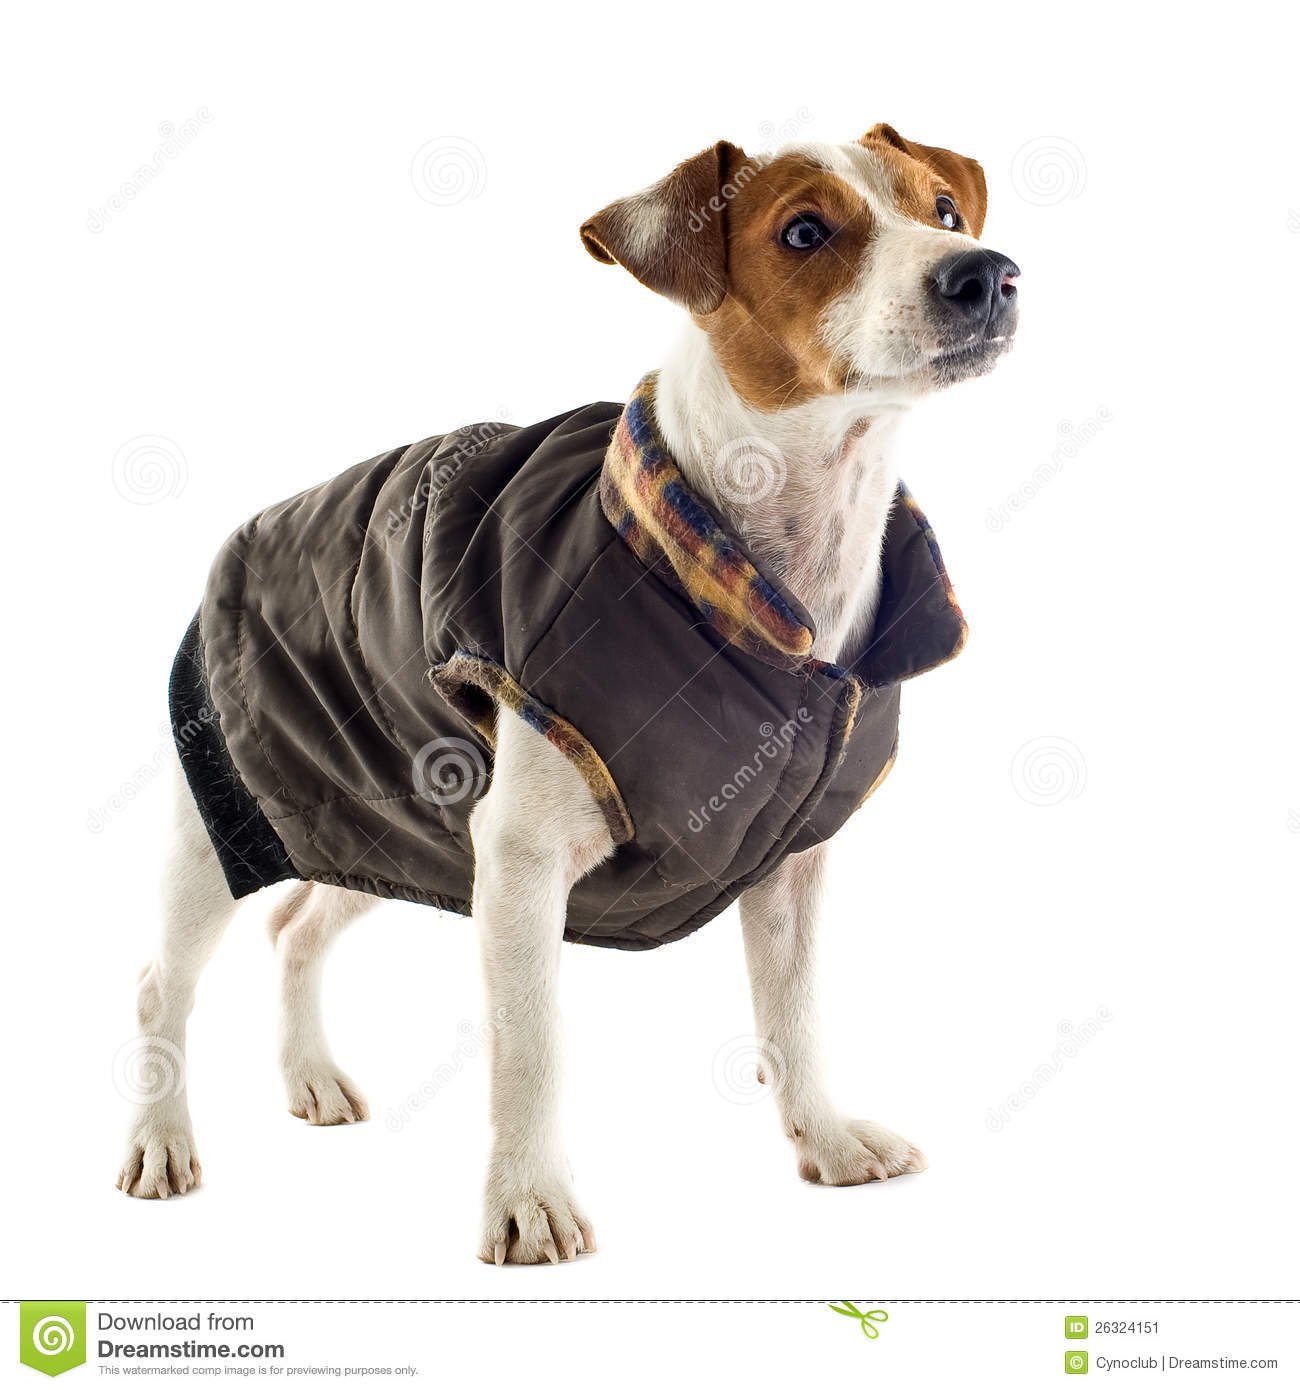 Jack Russel Terrier With Coat Stock Image - Image: 26324151